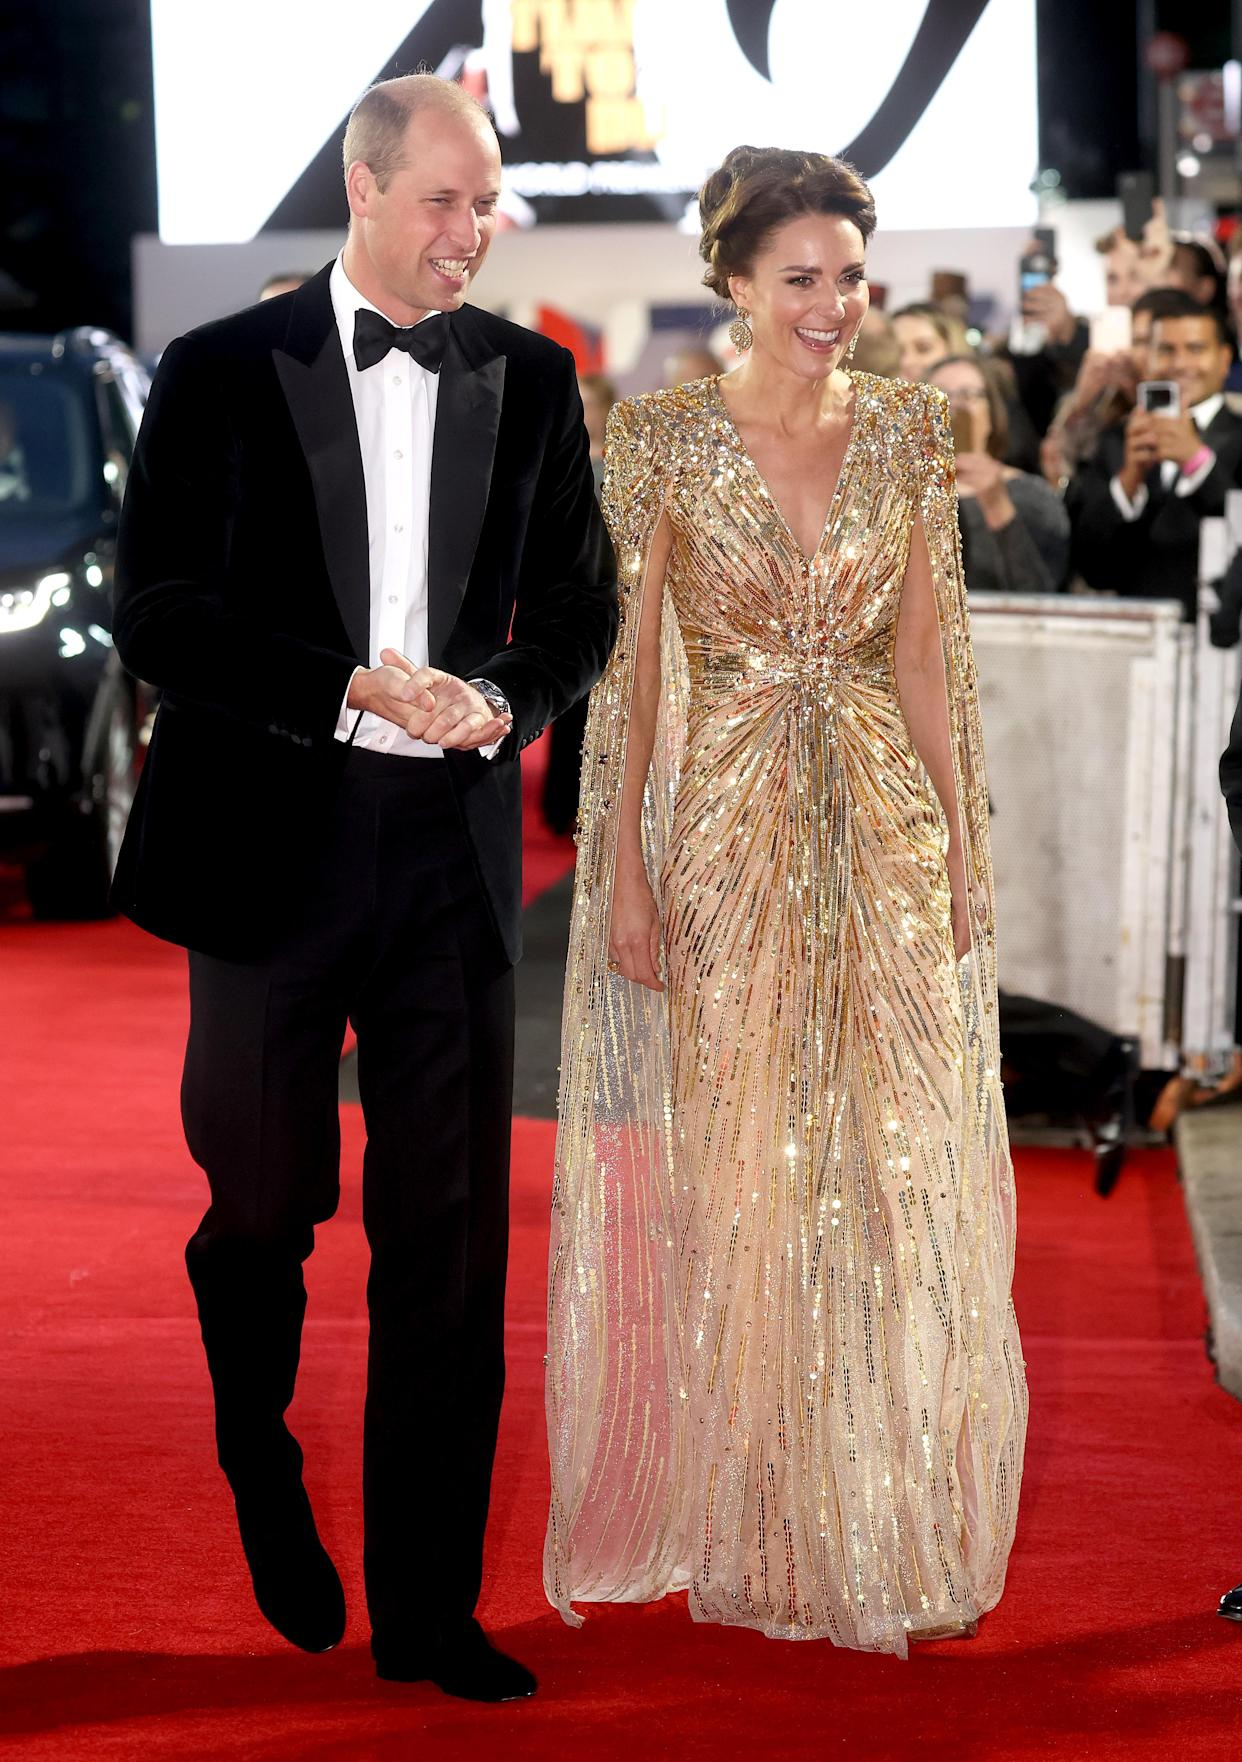 Sorry Will, all eyes were on the Duchess in this stunning Goldfinger-inspired dress. (Getty Images)